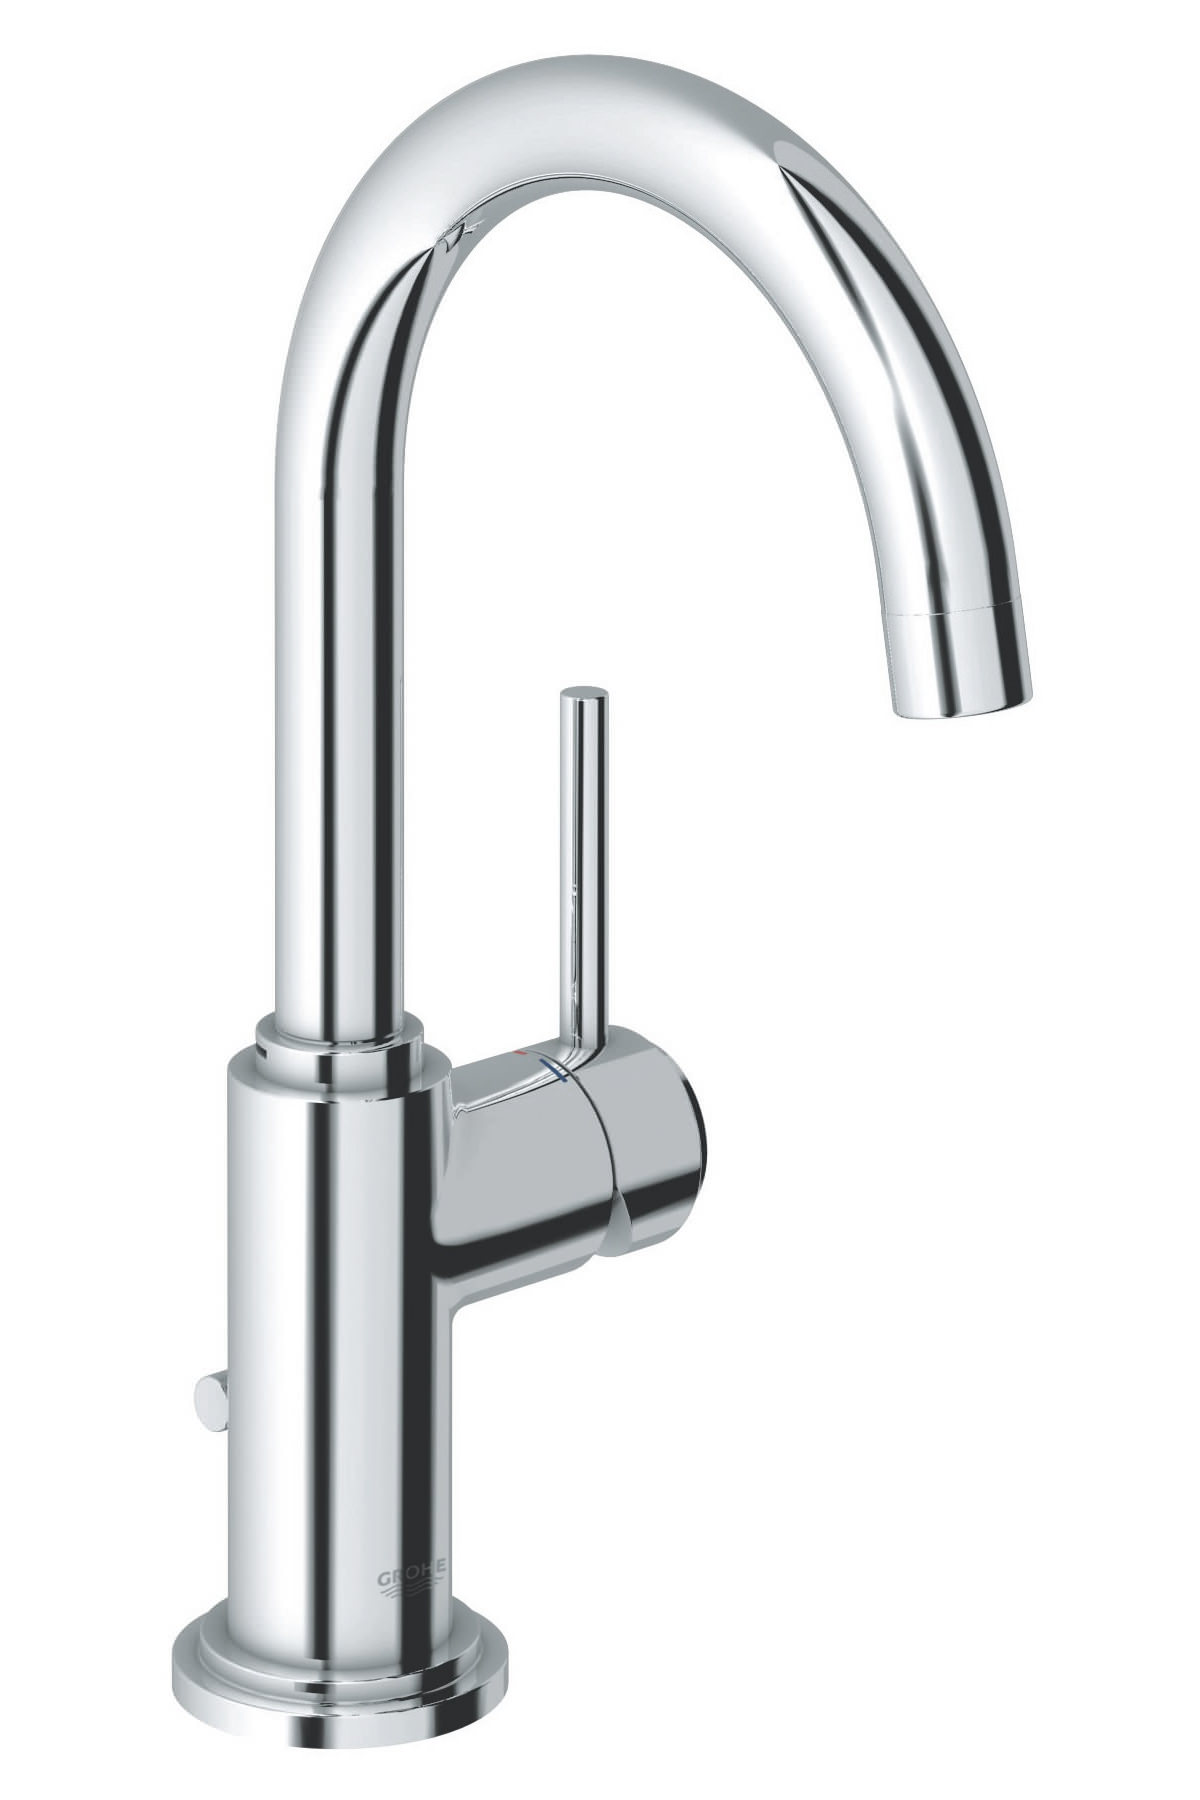 grohe kitchen faucet home depot sink spa atrio c-spout half inch basin mixer tap - 32042001